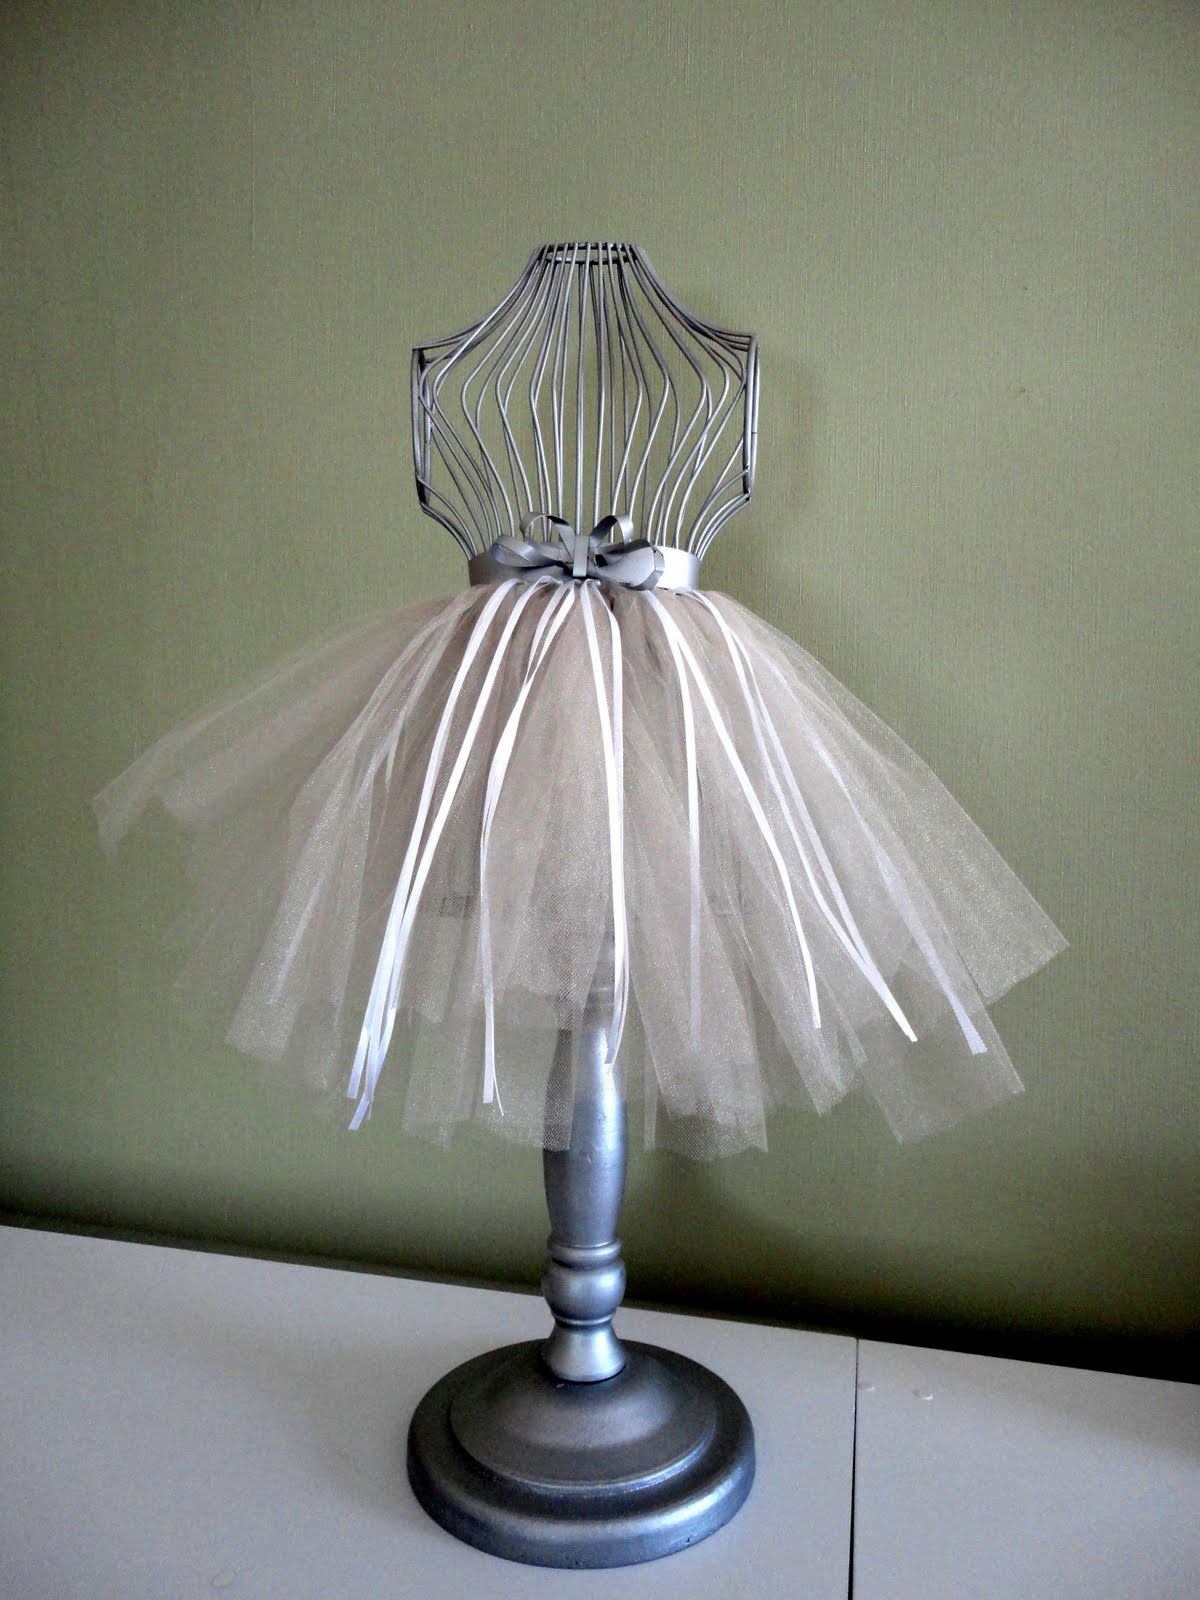 Wire Dress Holder Center Hopkins Towingr 48655 4wire Flat Tester With Led Lights Cheap Form Creative Craft Ballerina Bow Rh Pinterest Com Small Electrical Holders